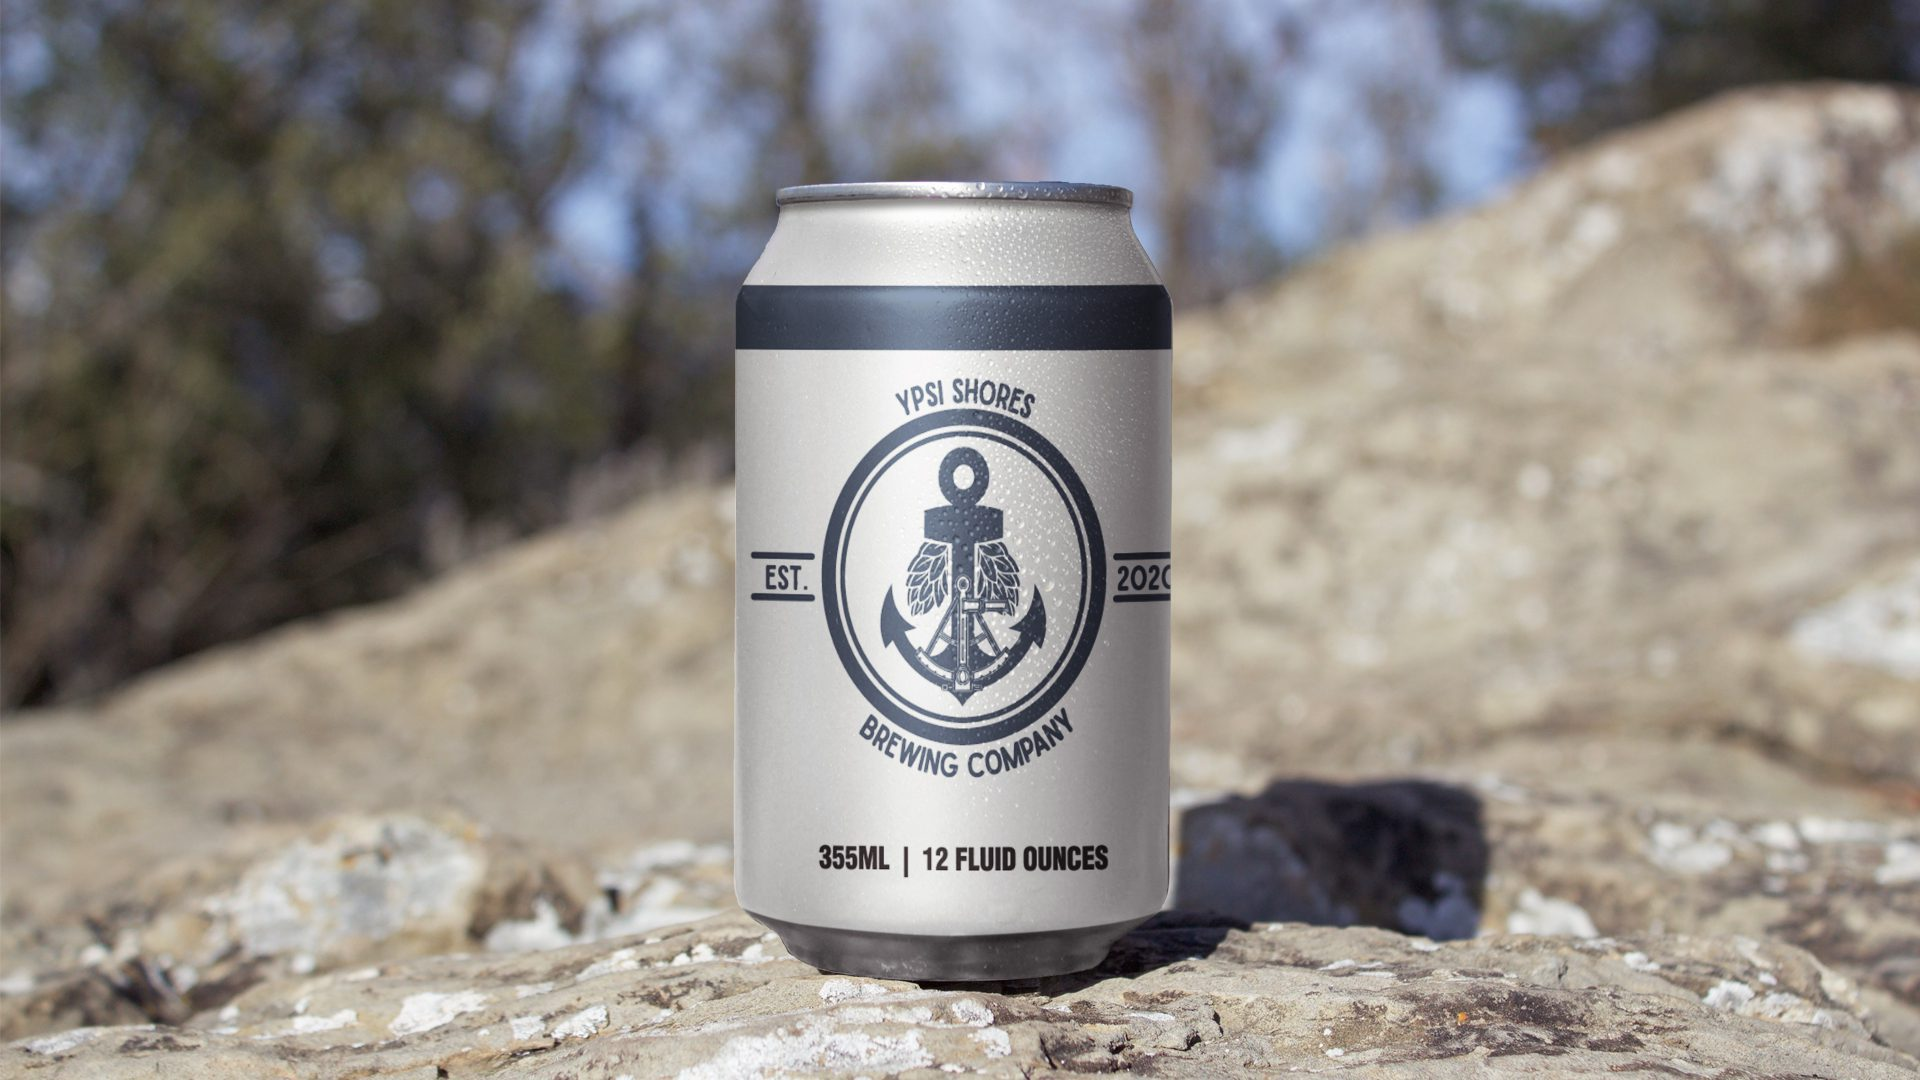 Ypsi Shores Brewing - 16 oz Can Label Mockup 04